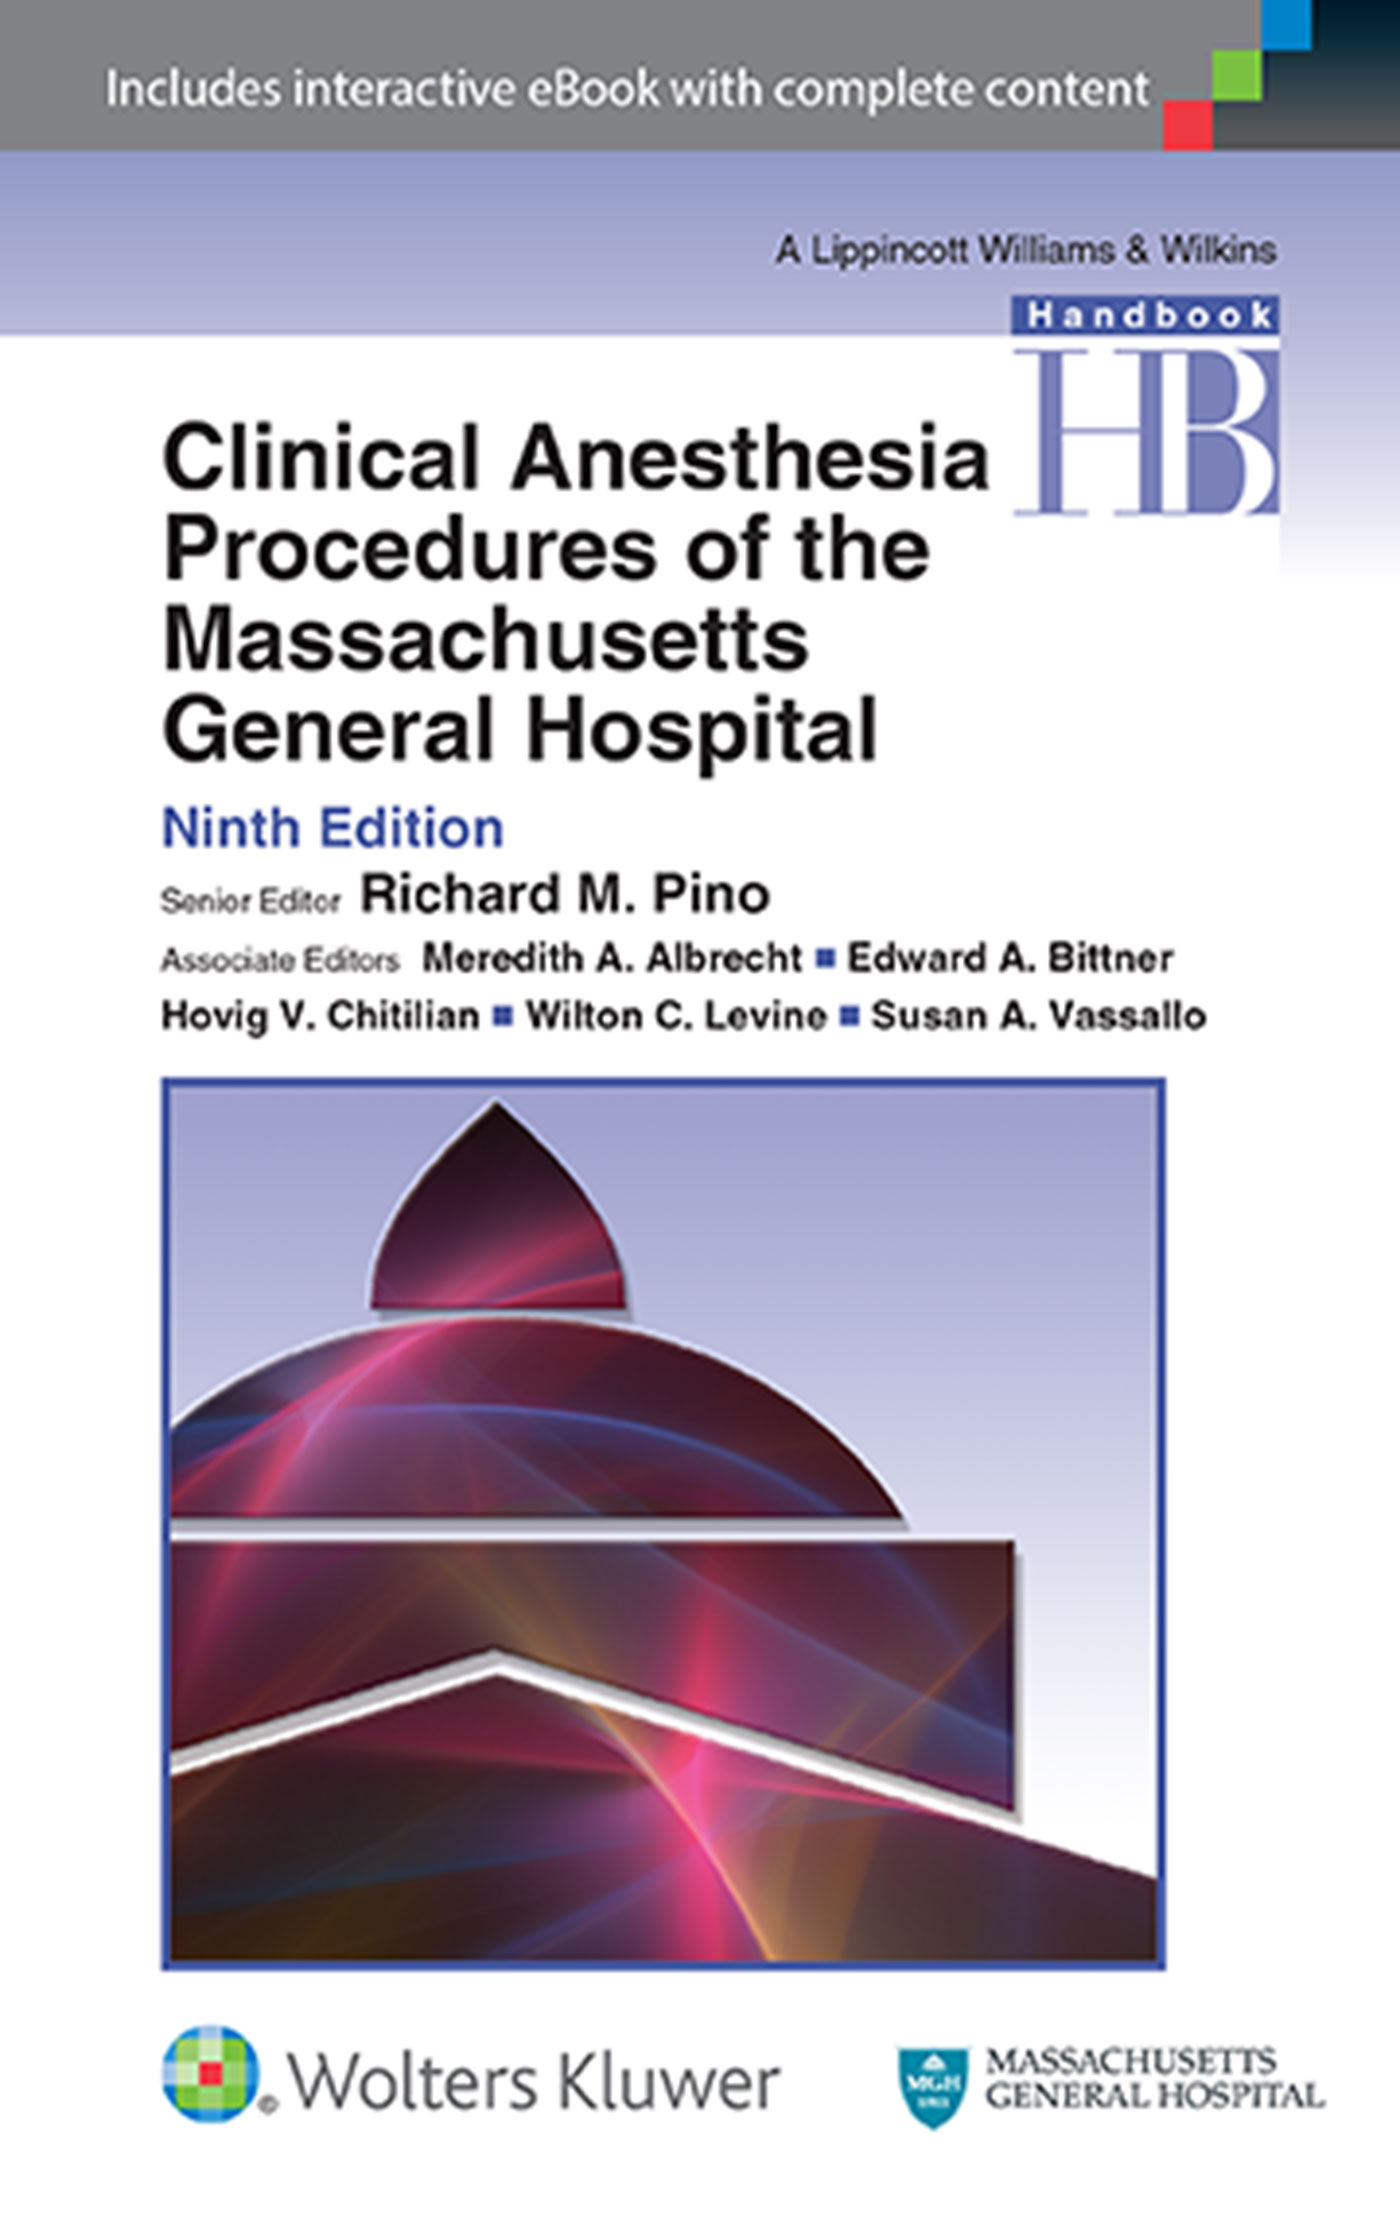 Frazers manual of embryology ebook solution manual version http array clinical anesthesia procedures of the massachusetts general rh shop fandeluxe Image collections